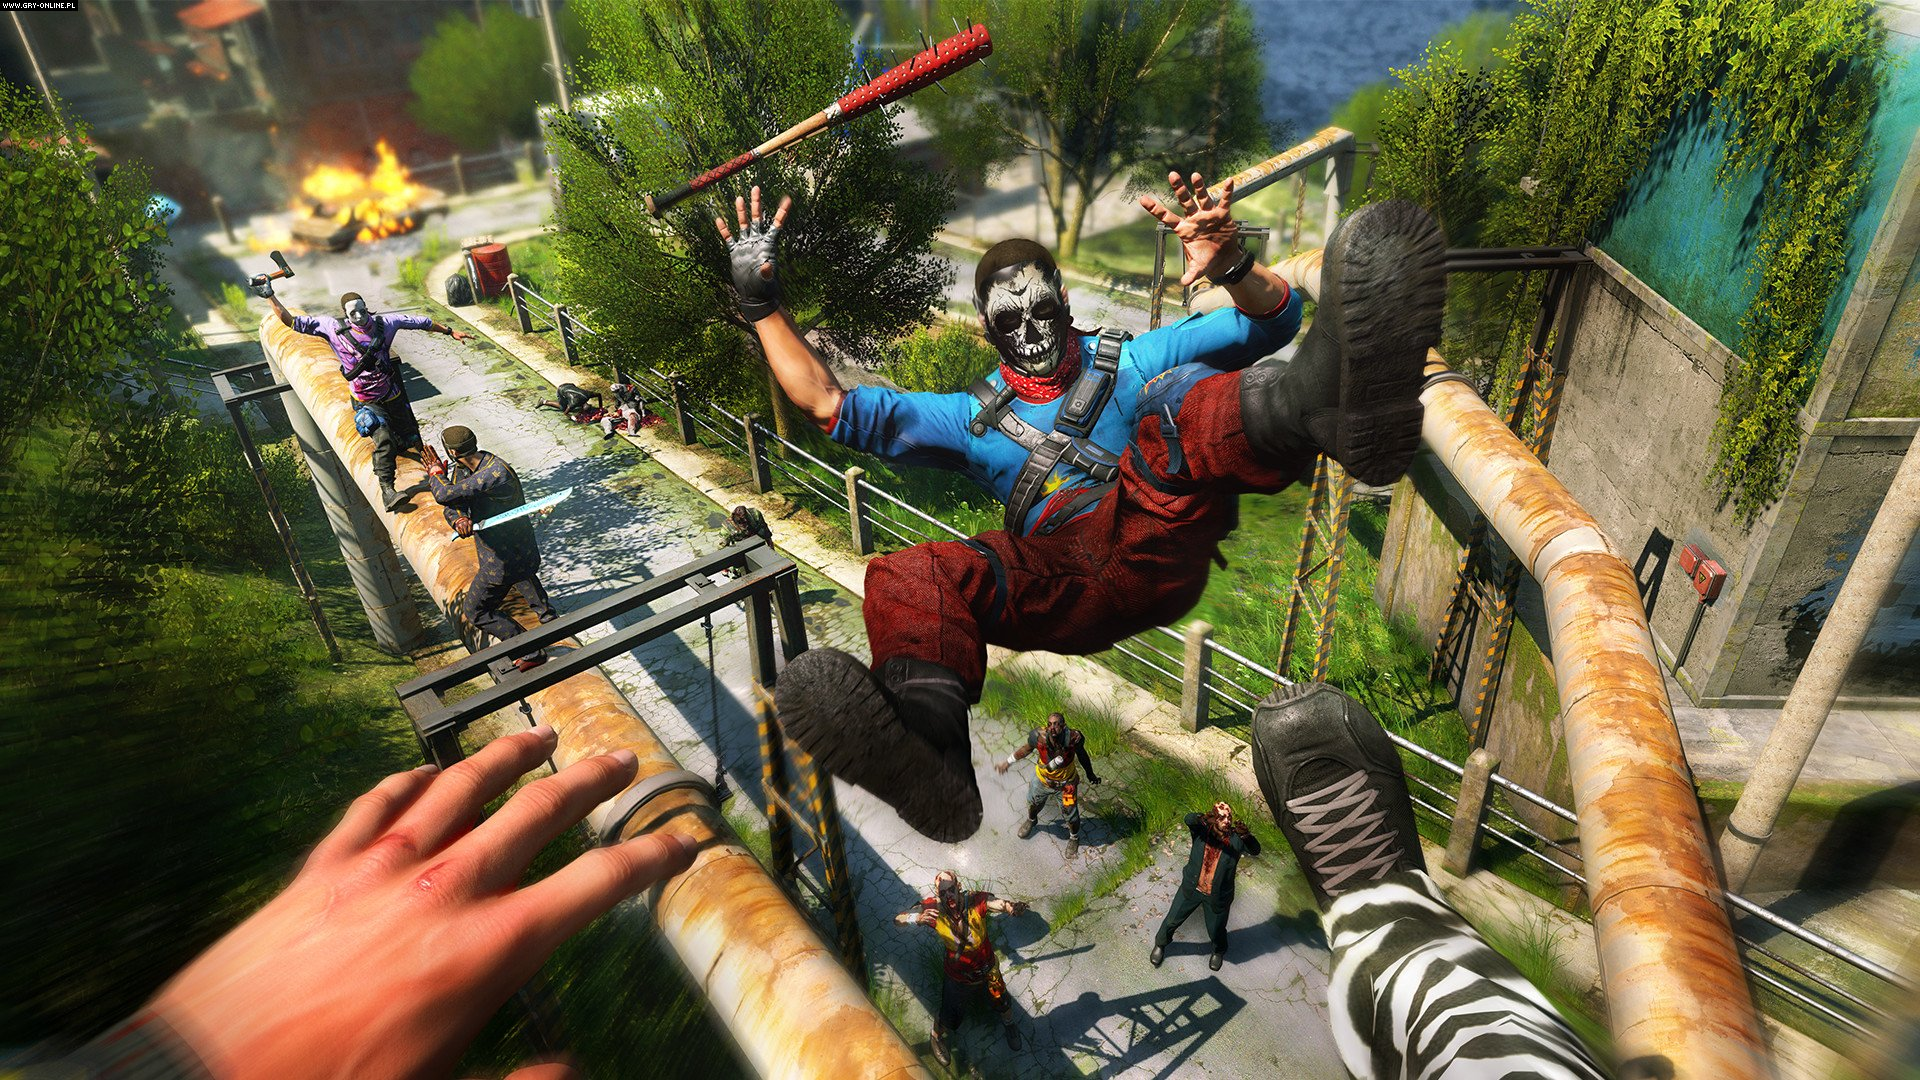 Dying Light: Bad Blood PC, PS4, XONE Games Image 5/5, Techland